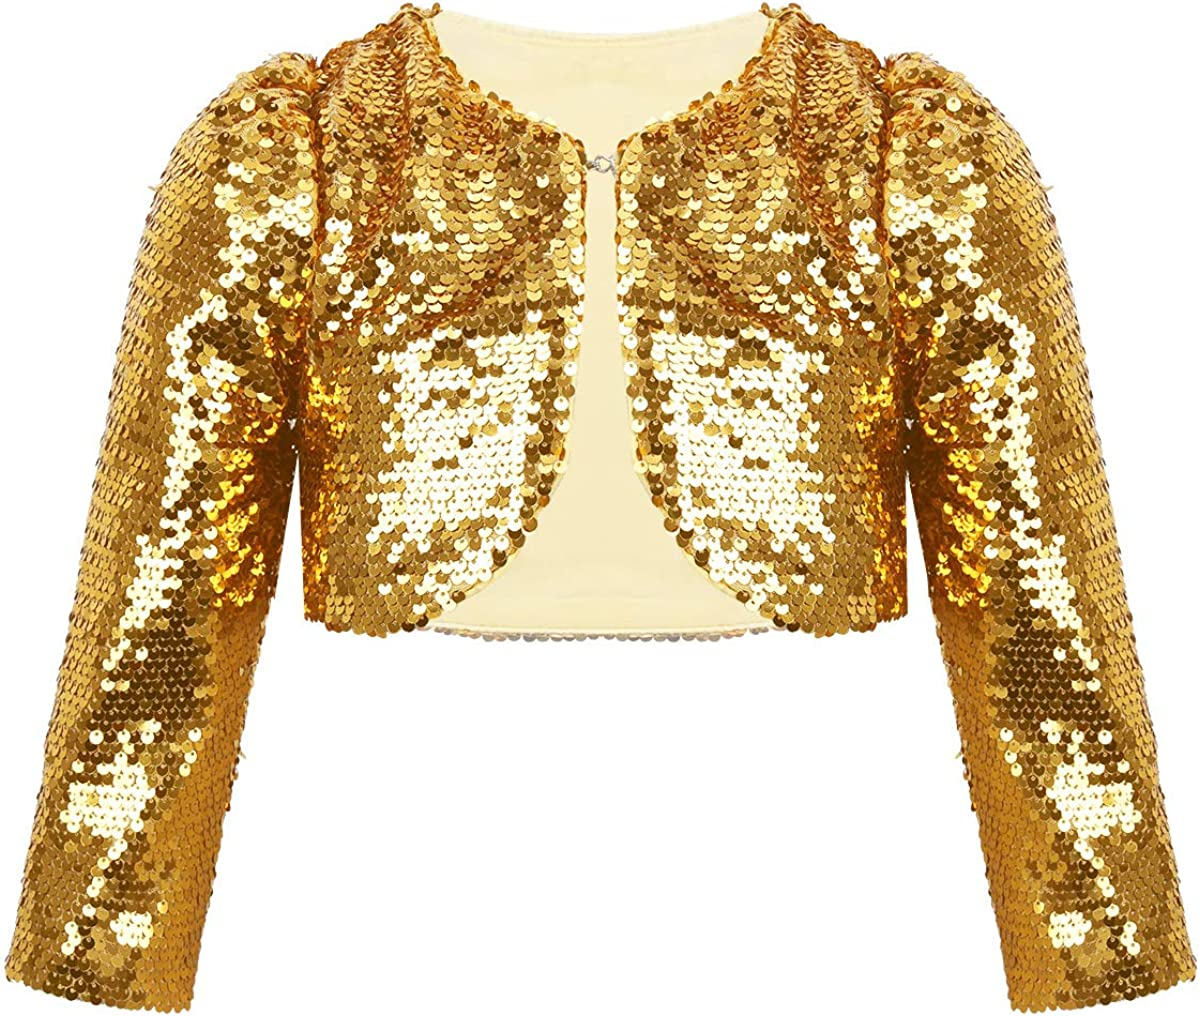 YiZYiF Kids Girls Long Sleeve Sparking Sequins Shrug Wedding Pageant Party Outerwear Bolero Jackets